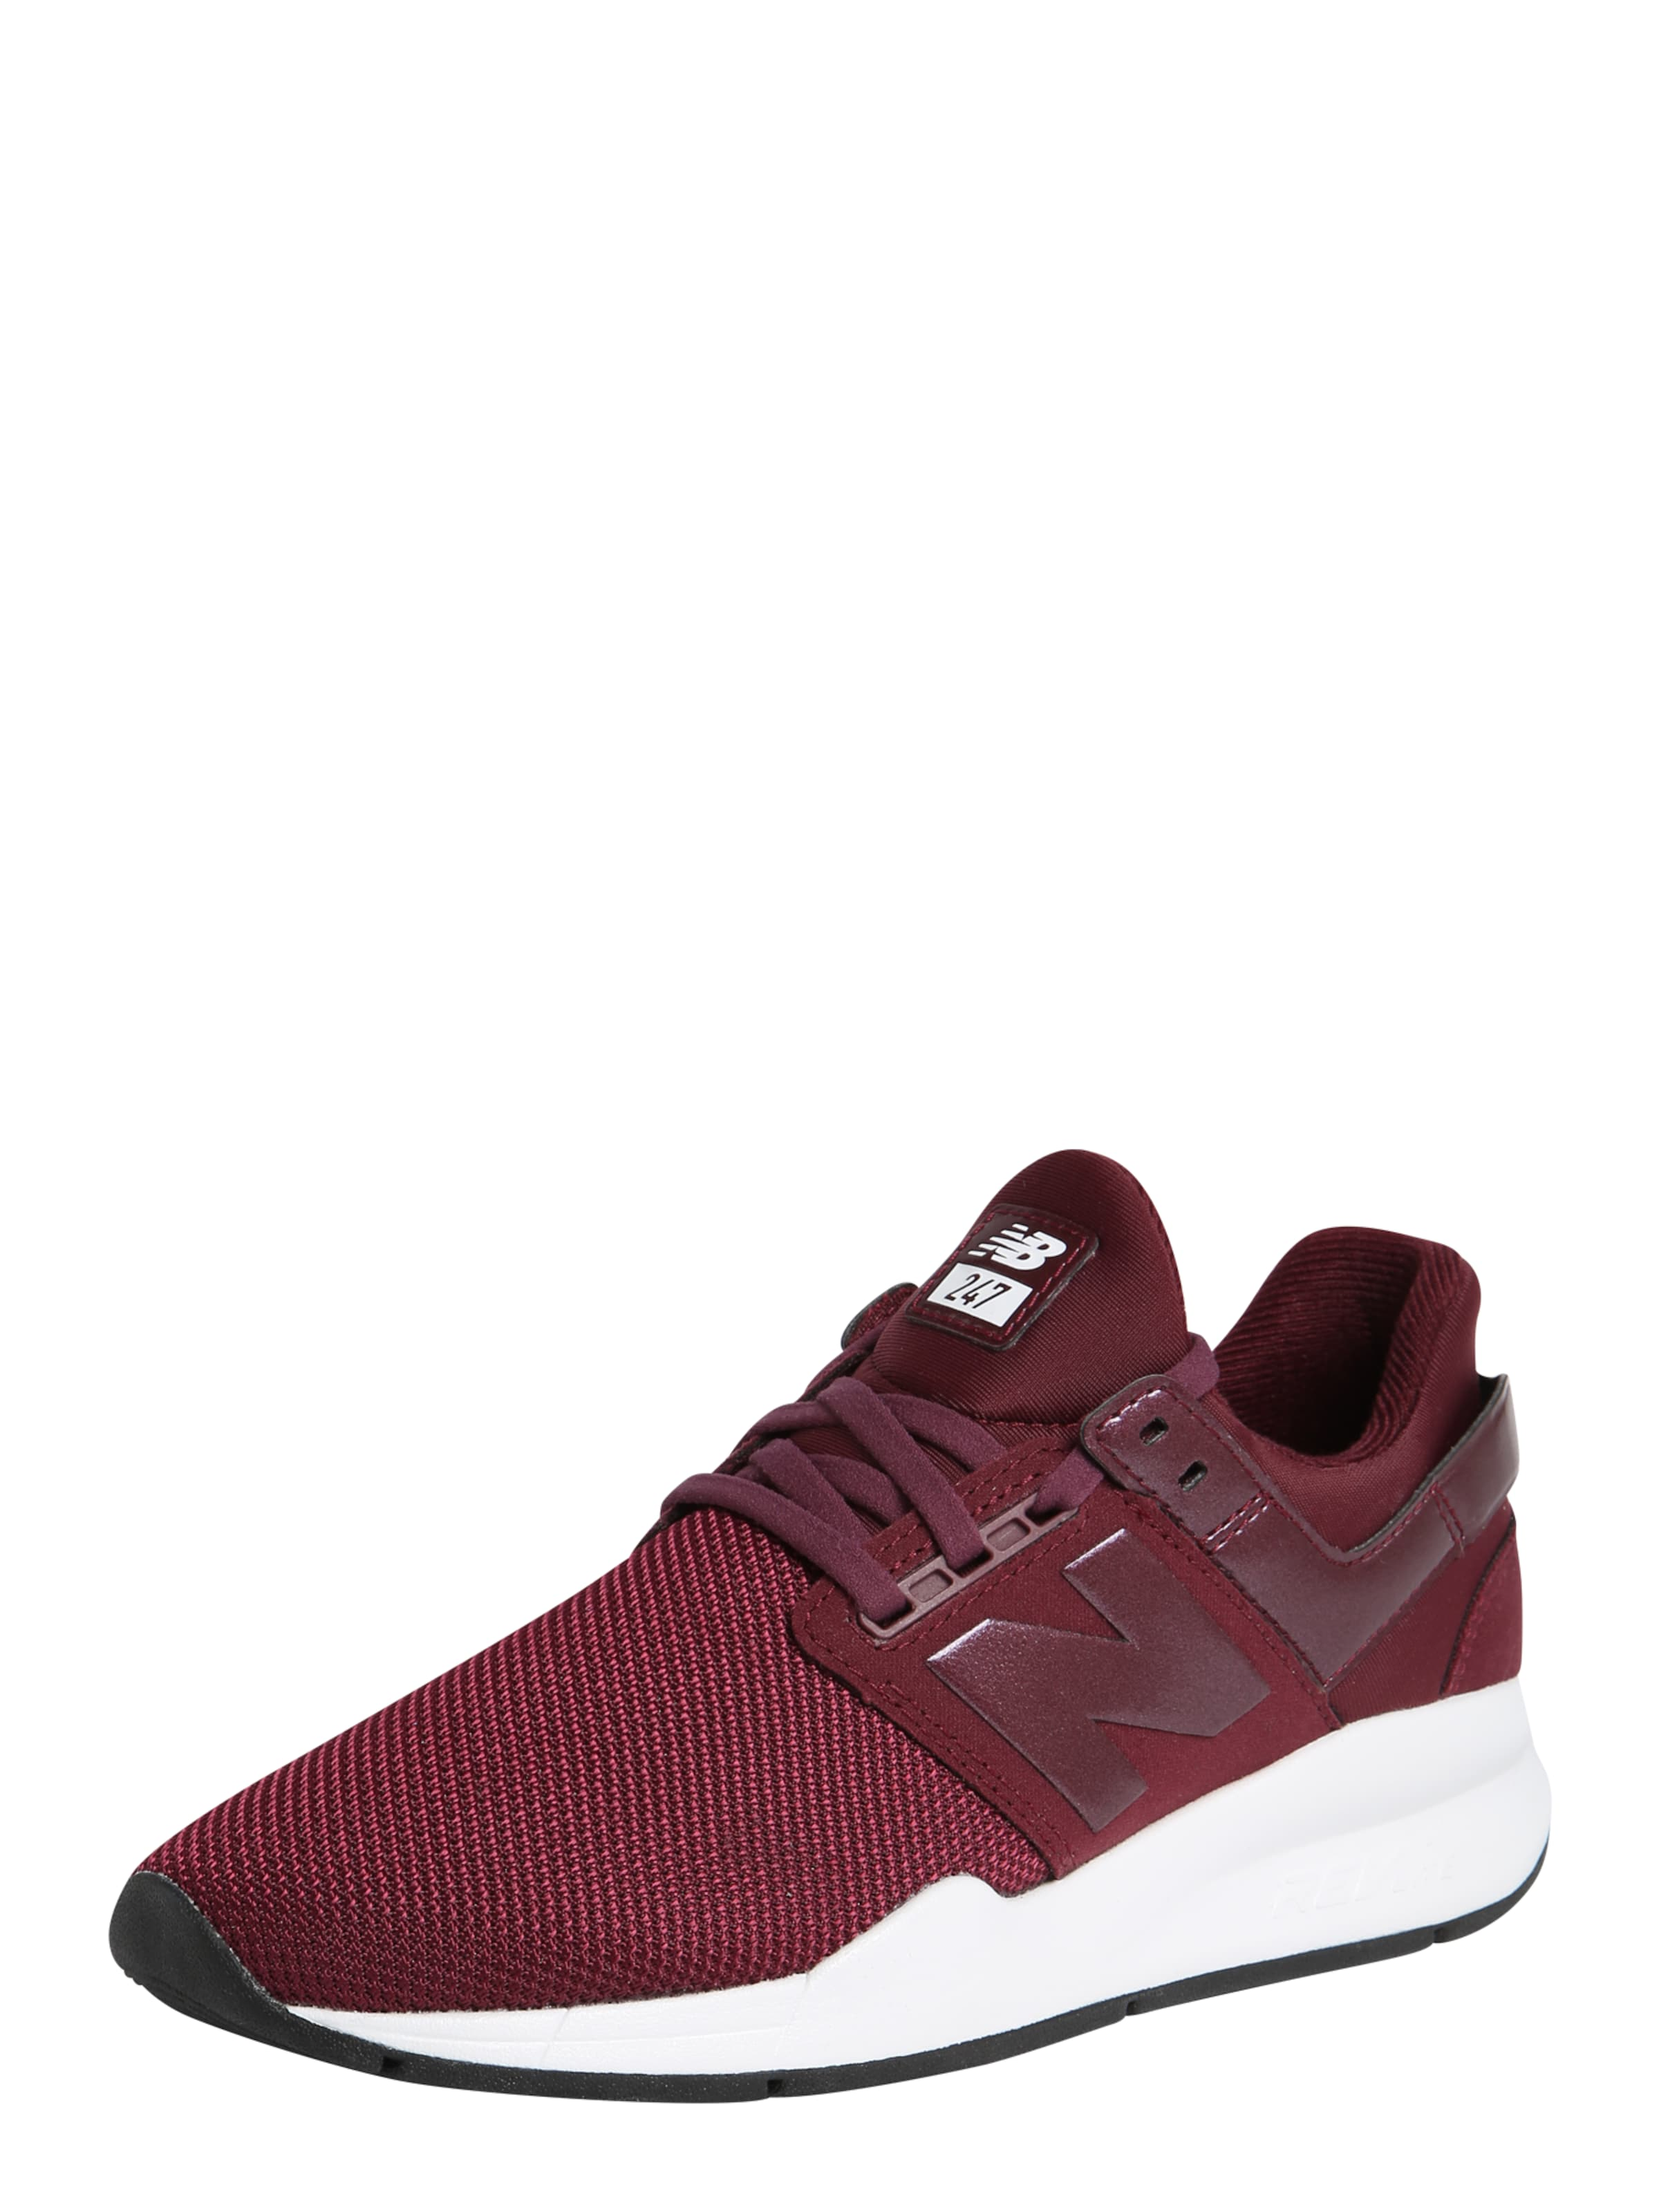 Laag Wijnrood In Sneakers 'ws247' Balance New DH2YeE9WI